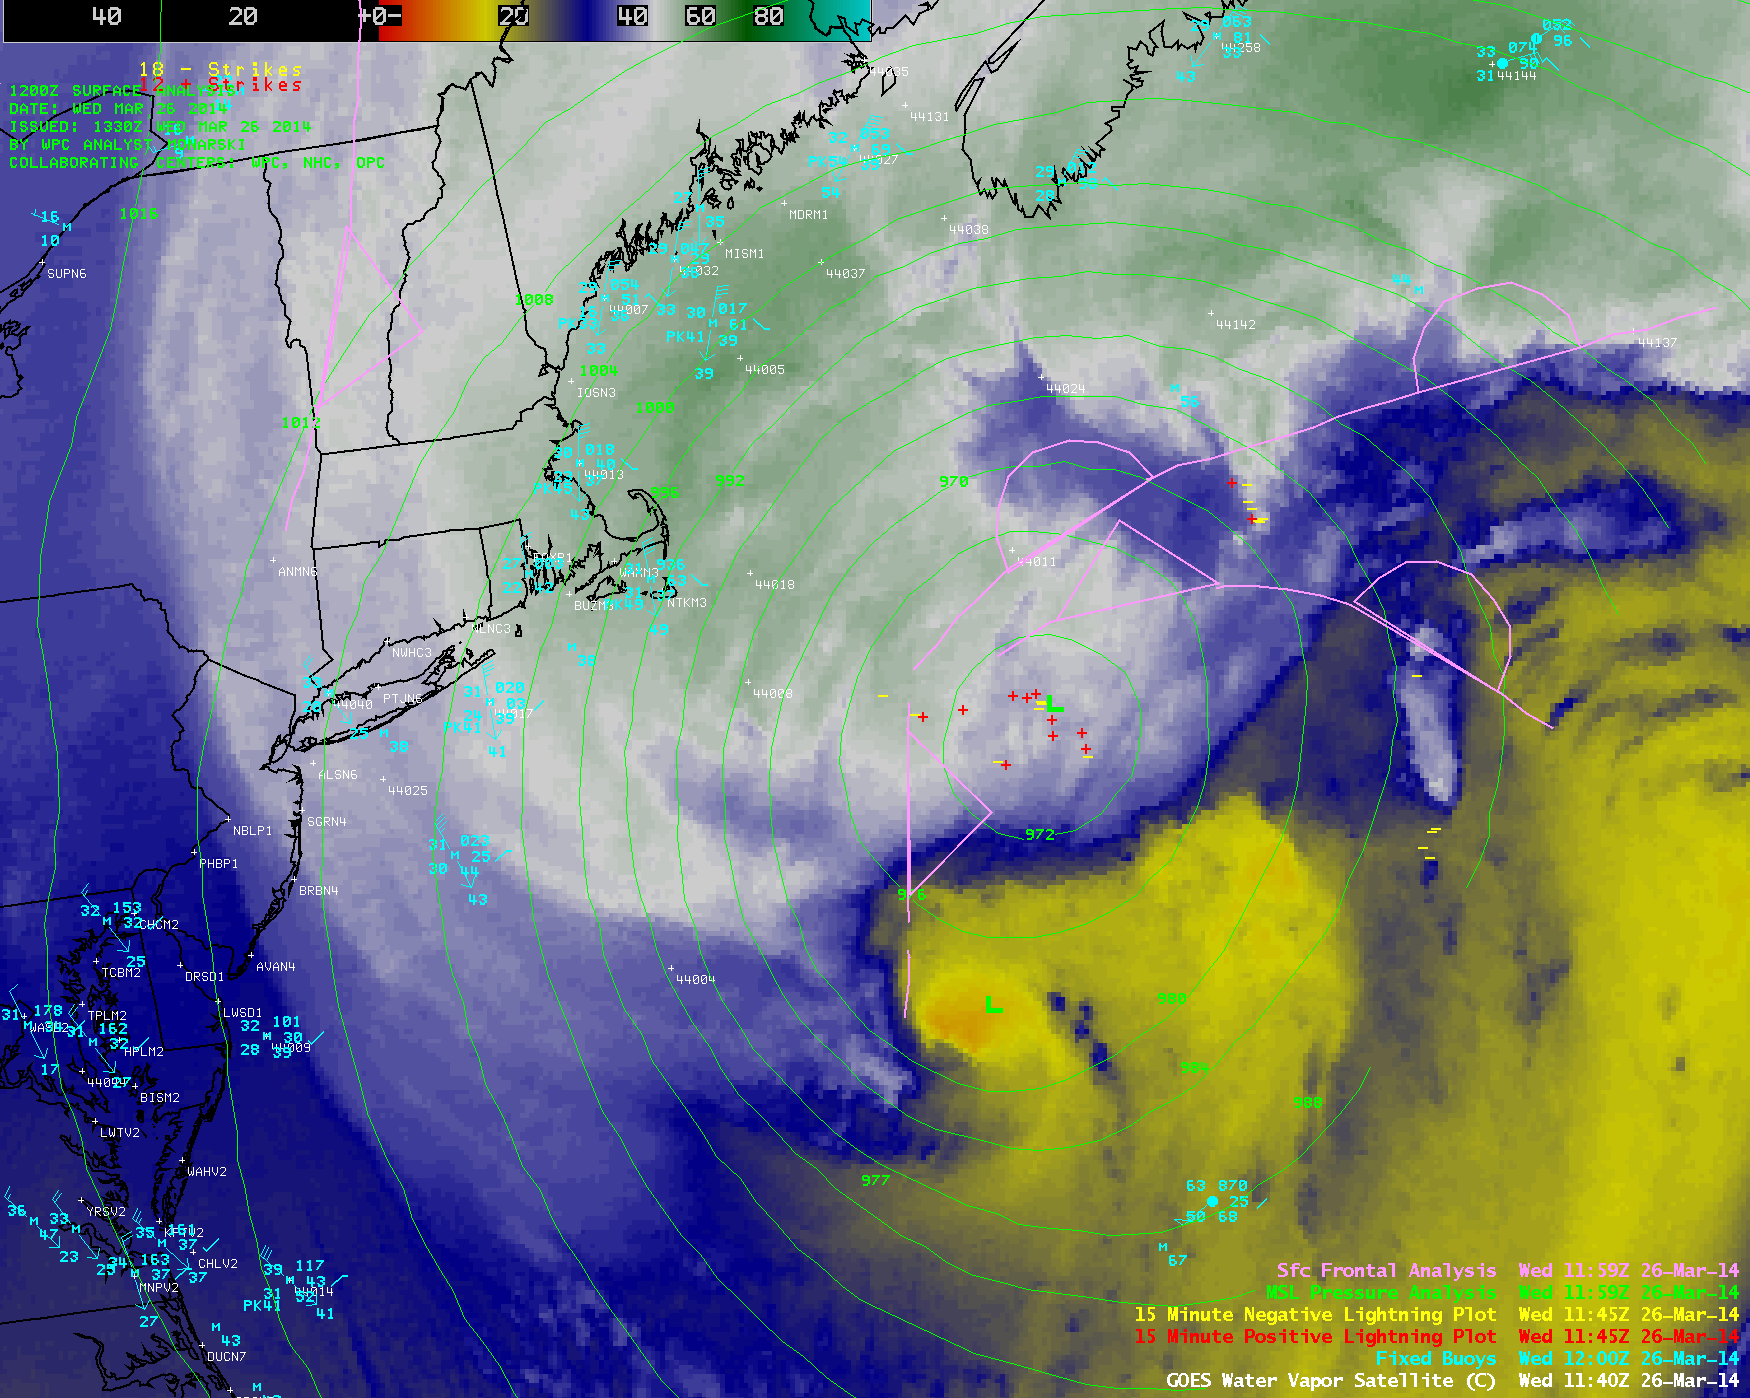 GOES-13 6.5 µm water vapor channel images (click to play animation)